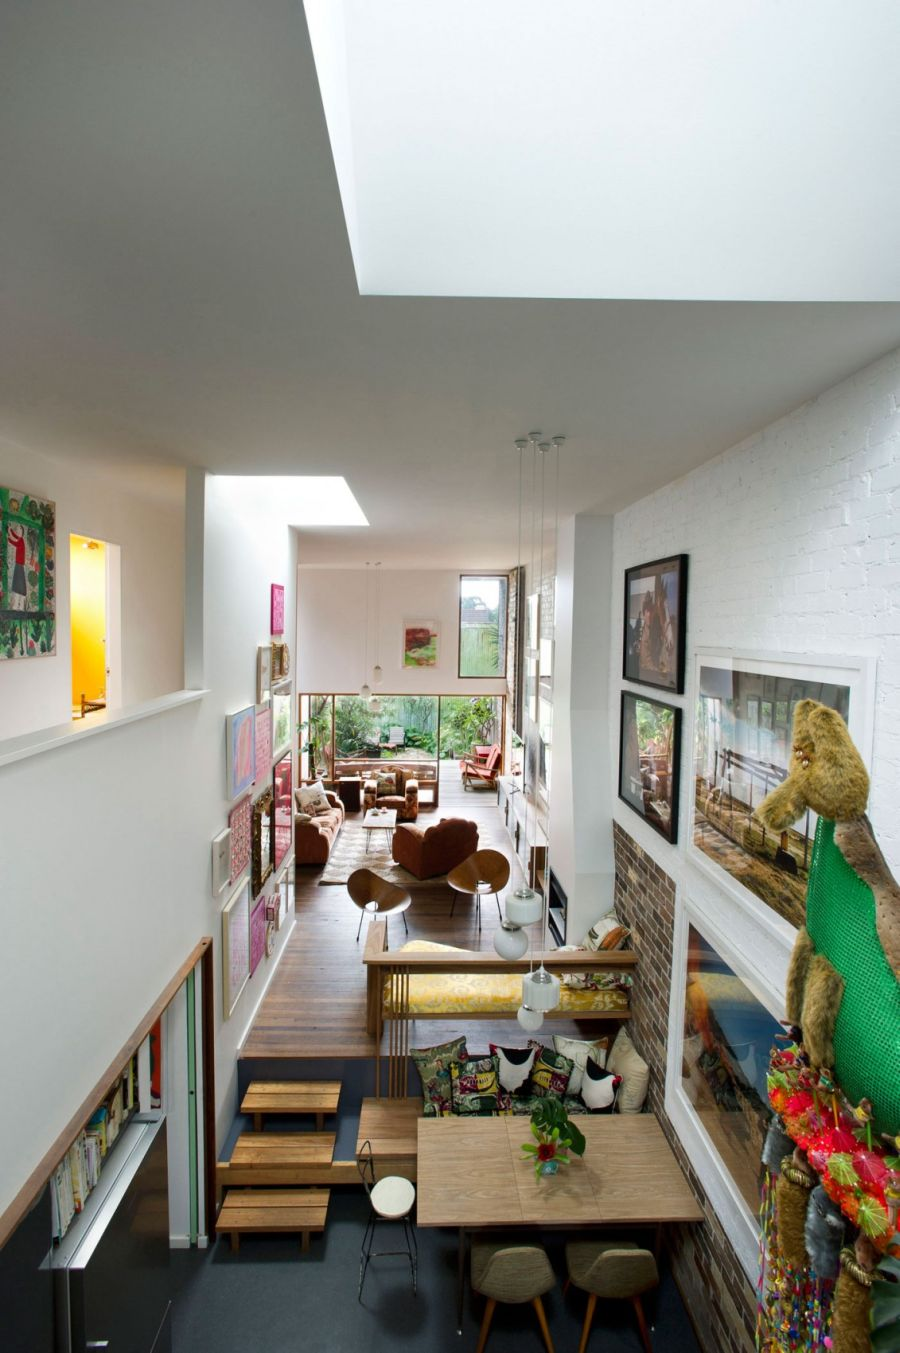 High ceiling creates a spacious look